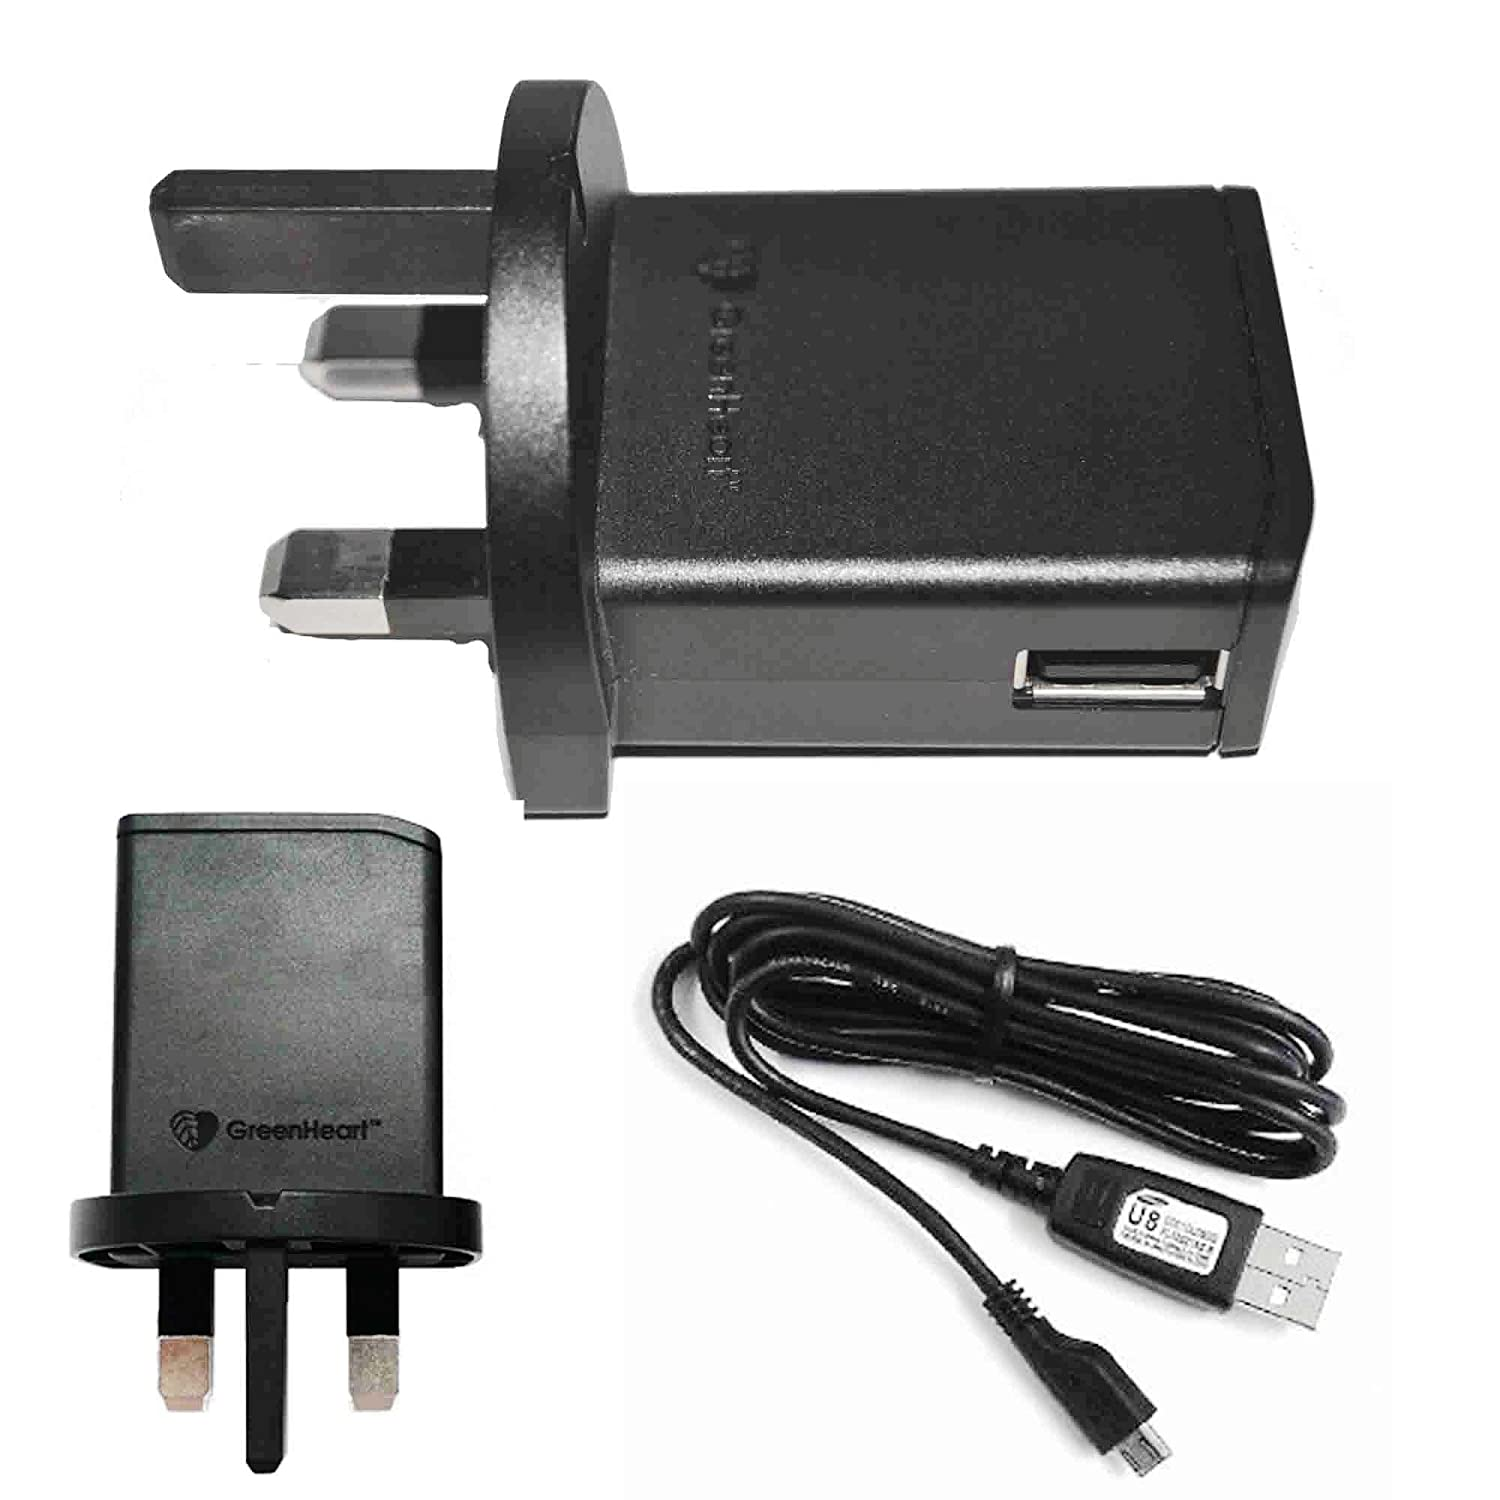 Sony Ericsson Ep800 Mains Charger Wall Adaptor Samsung Micro Usb Data Cable Ec803 Original Electronics